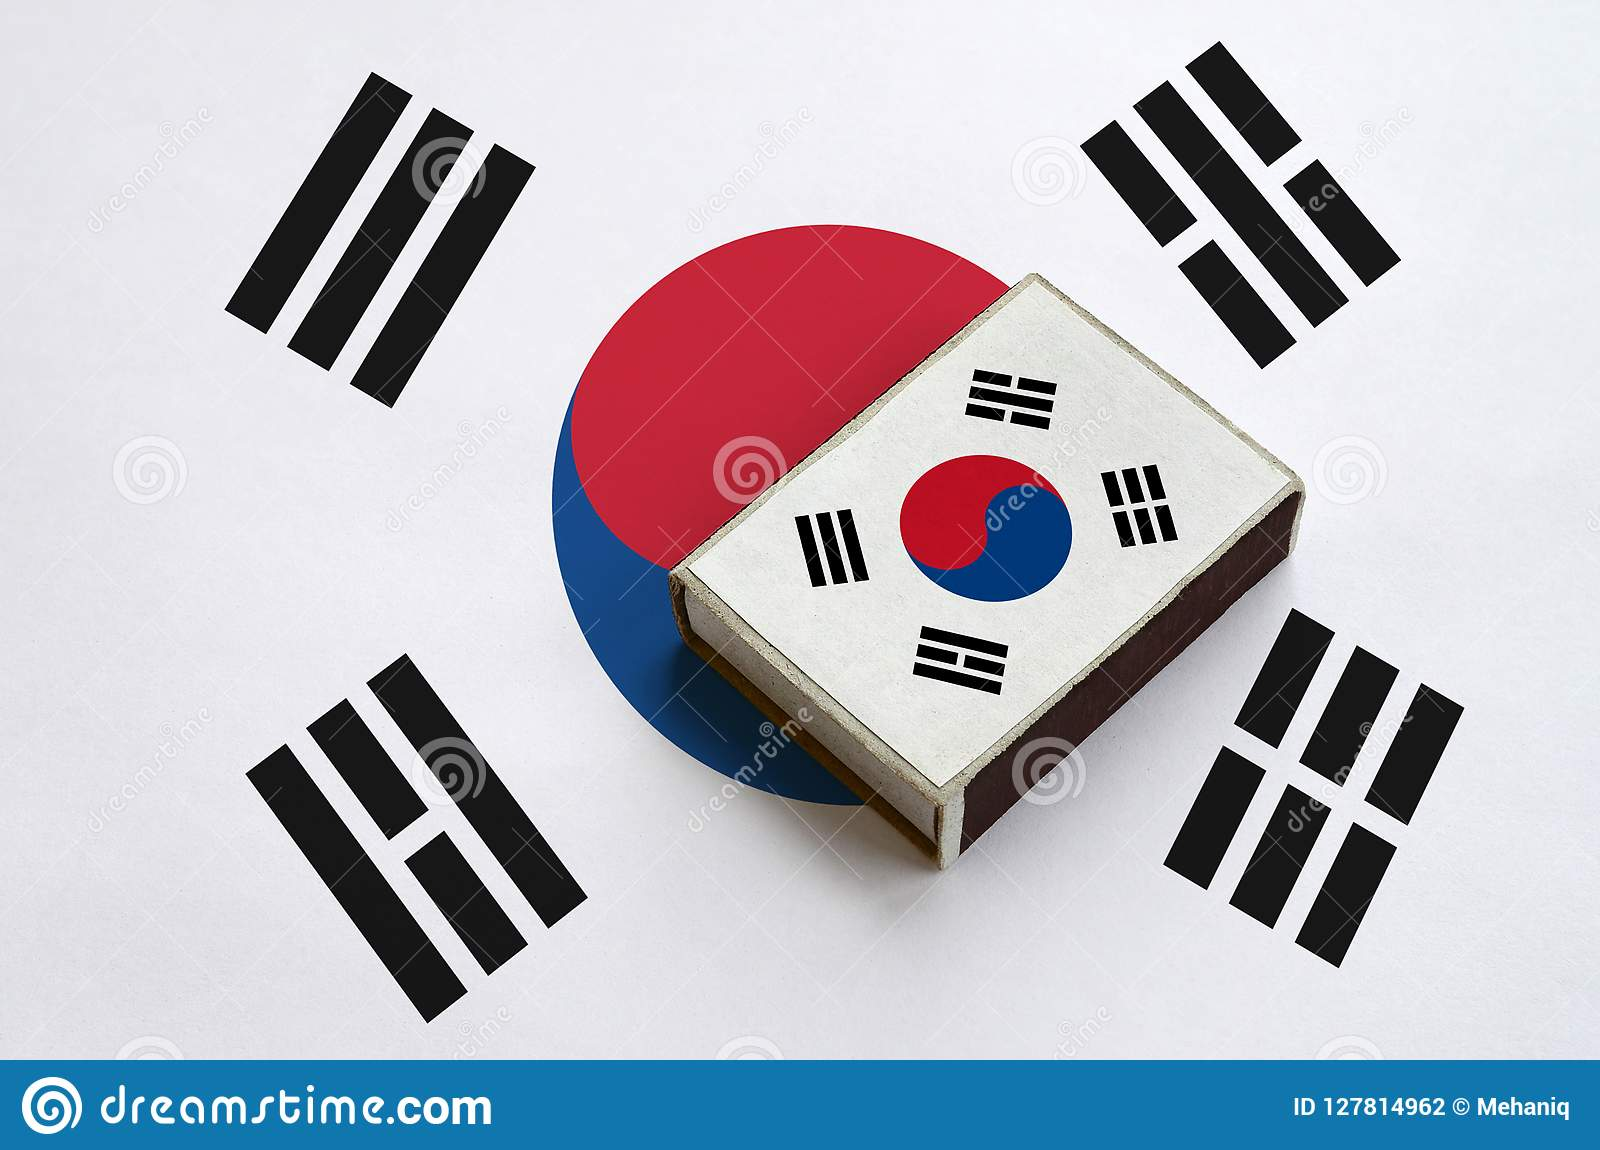 South Korea flag is pictured on a matchbox that lies on a large flag